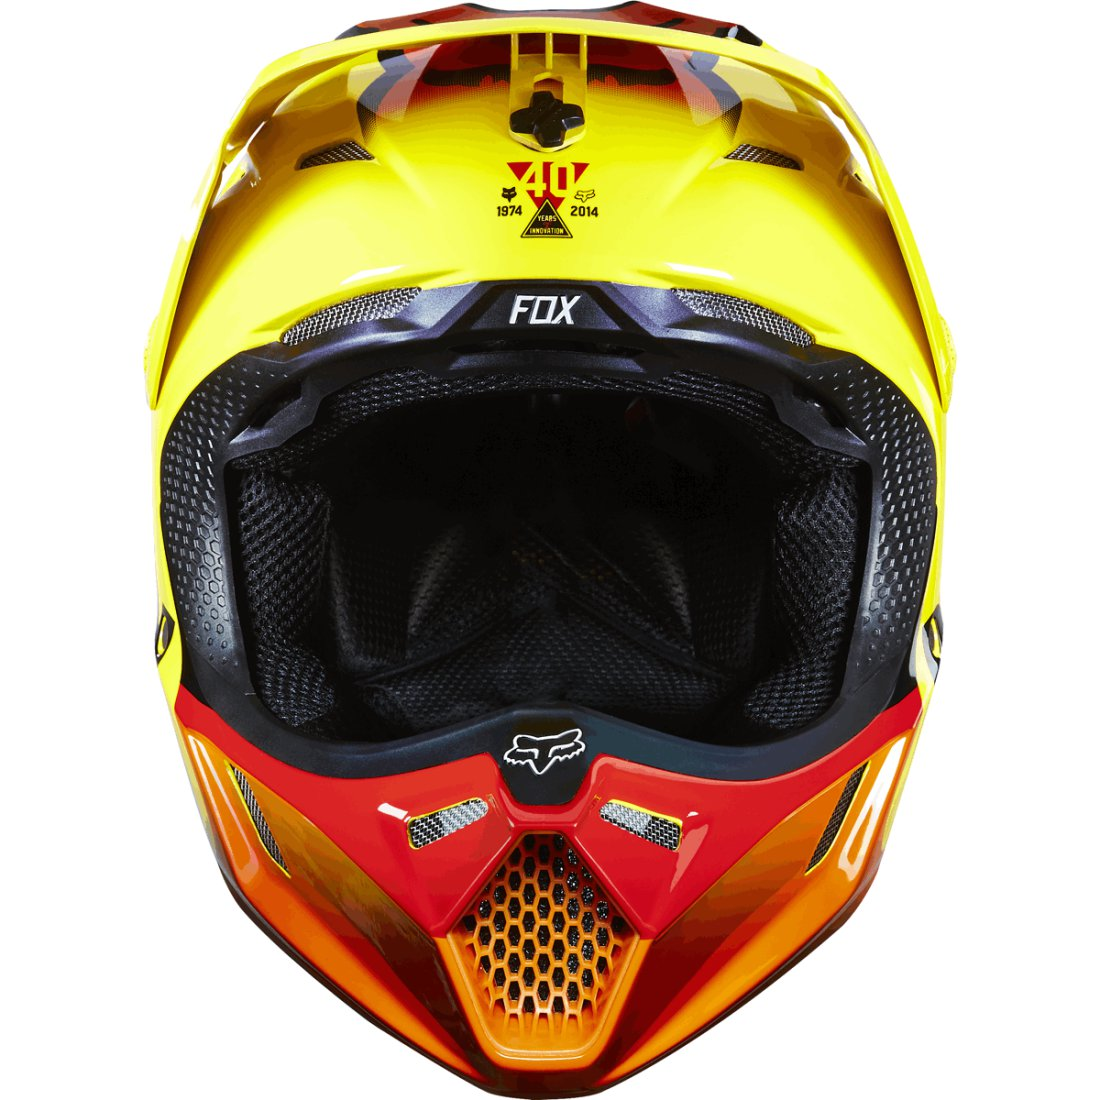 casque fox v3 40 years 2015 y limited edition motocard. Black Bedroom Furniture Sets. Home Design Ideas